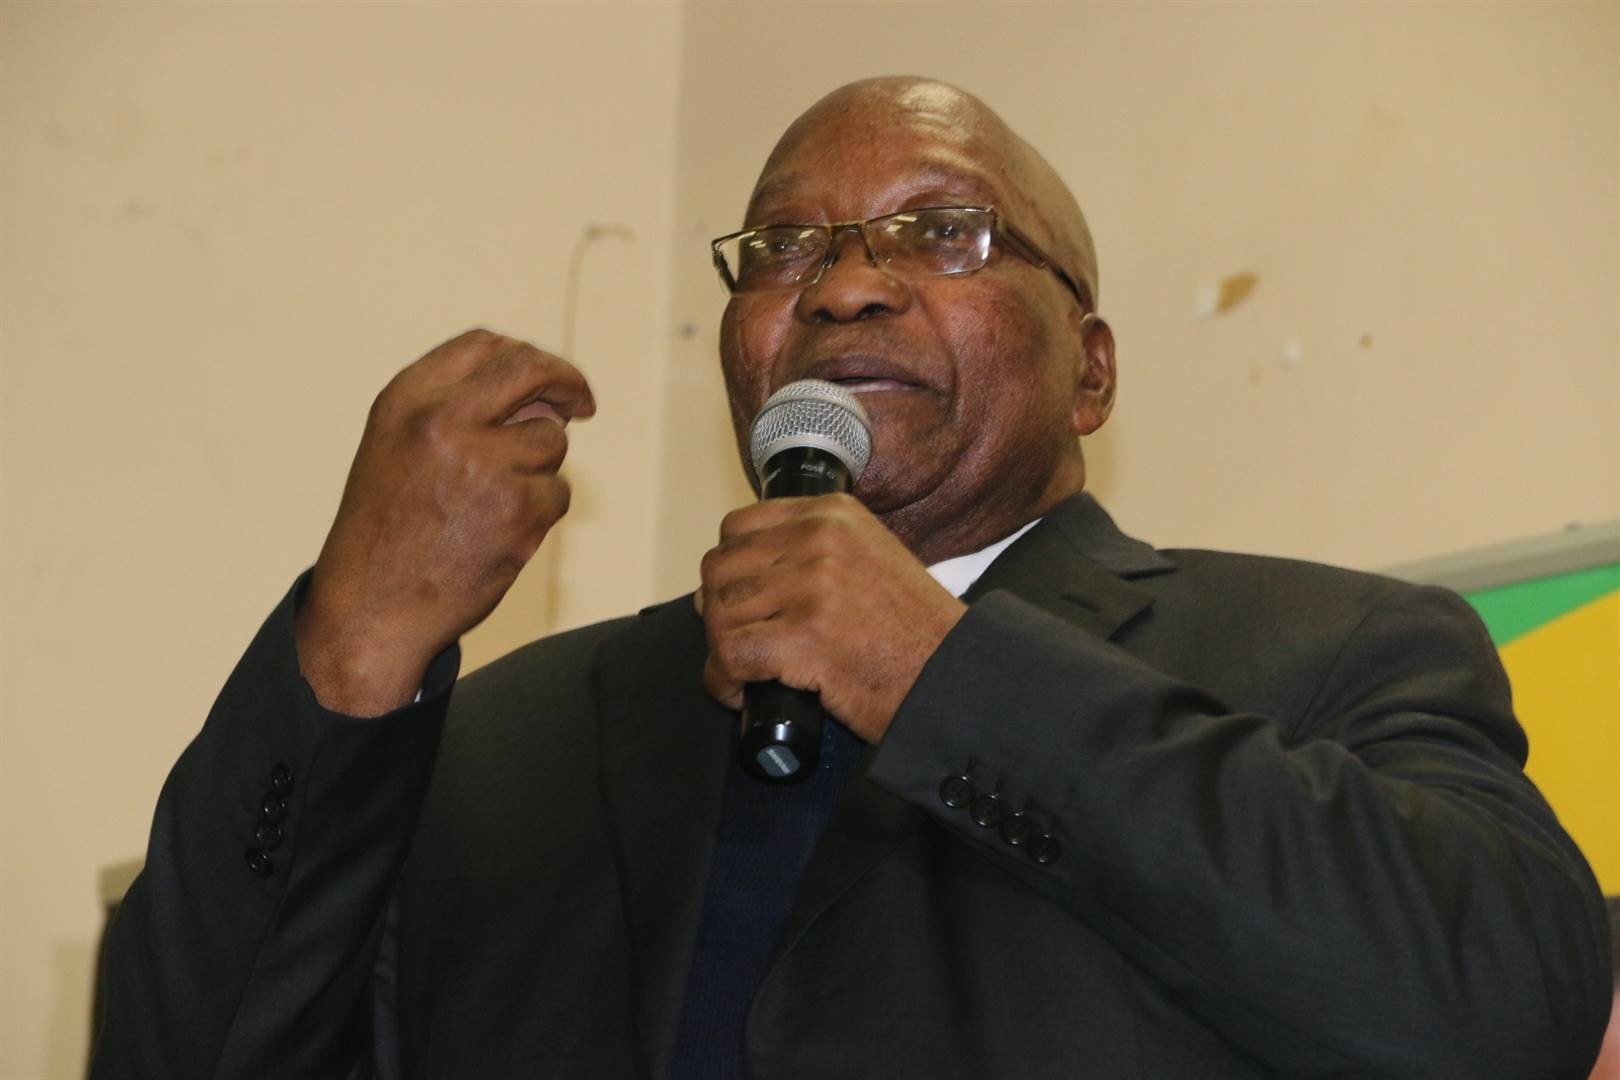 Former president Jacob Zuma addresses community members on the relevance of the ANCYL in today's society. Picture: Palesa Dlamini/City Press